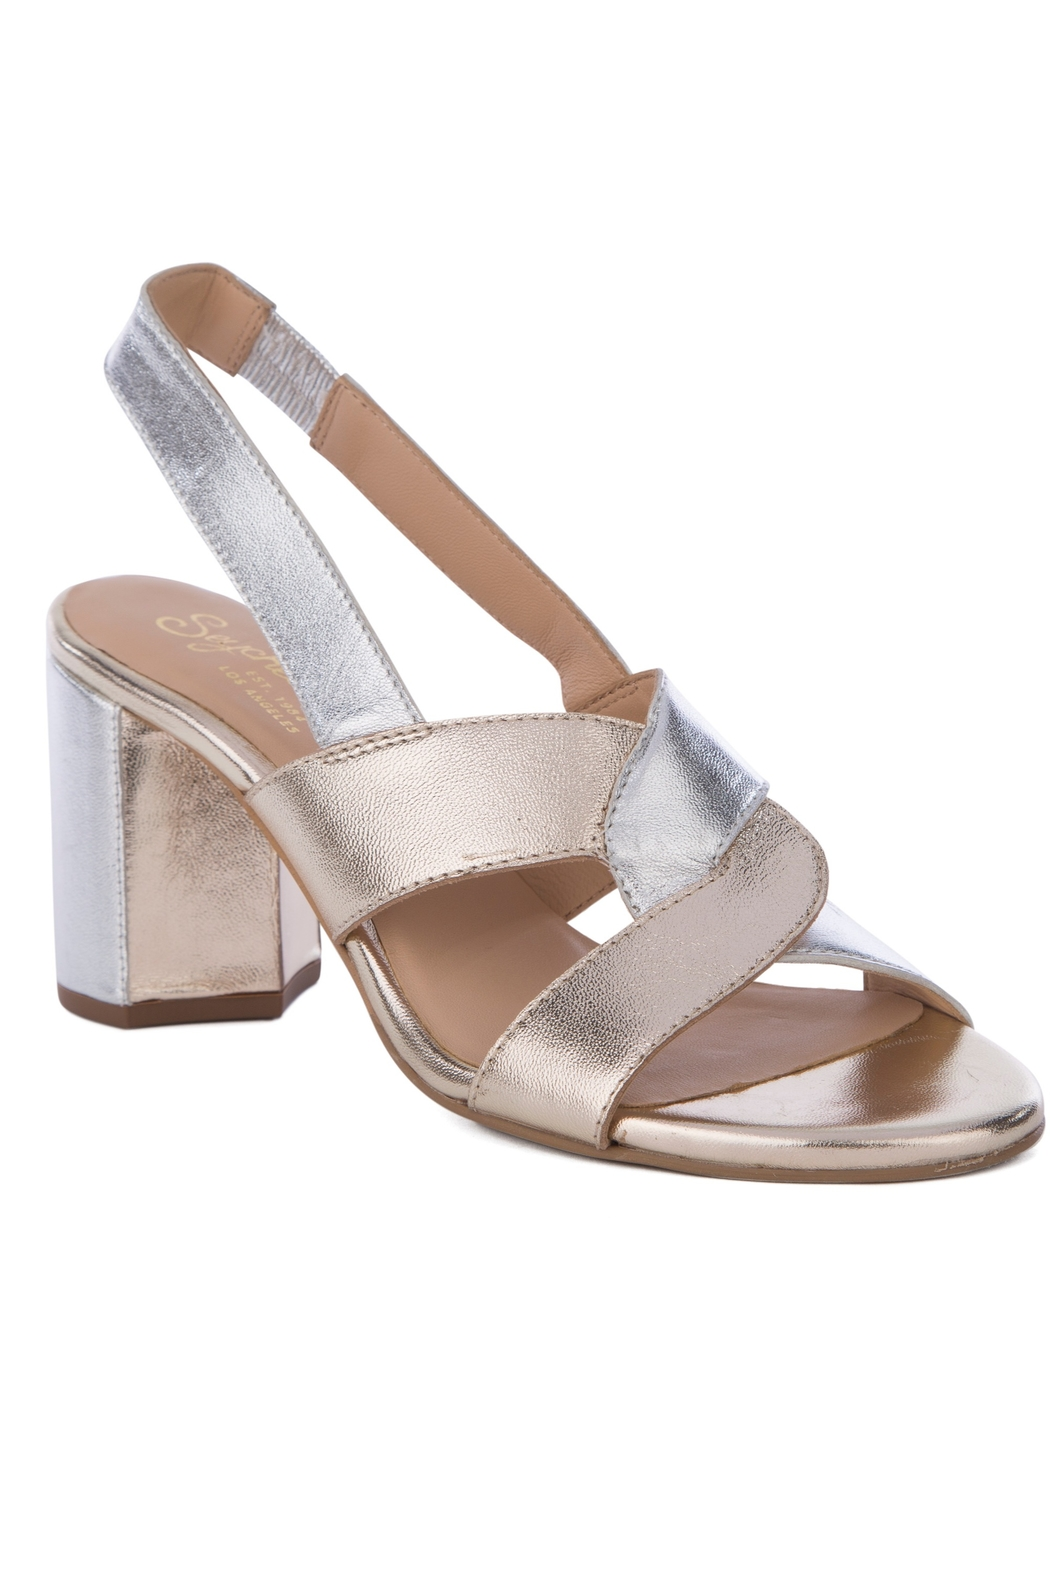 Seychelles Odds and Ends Metallic Heeled Sandals - Front Cropped Image